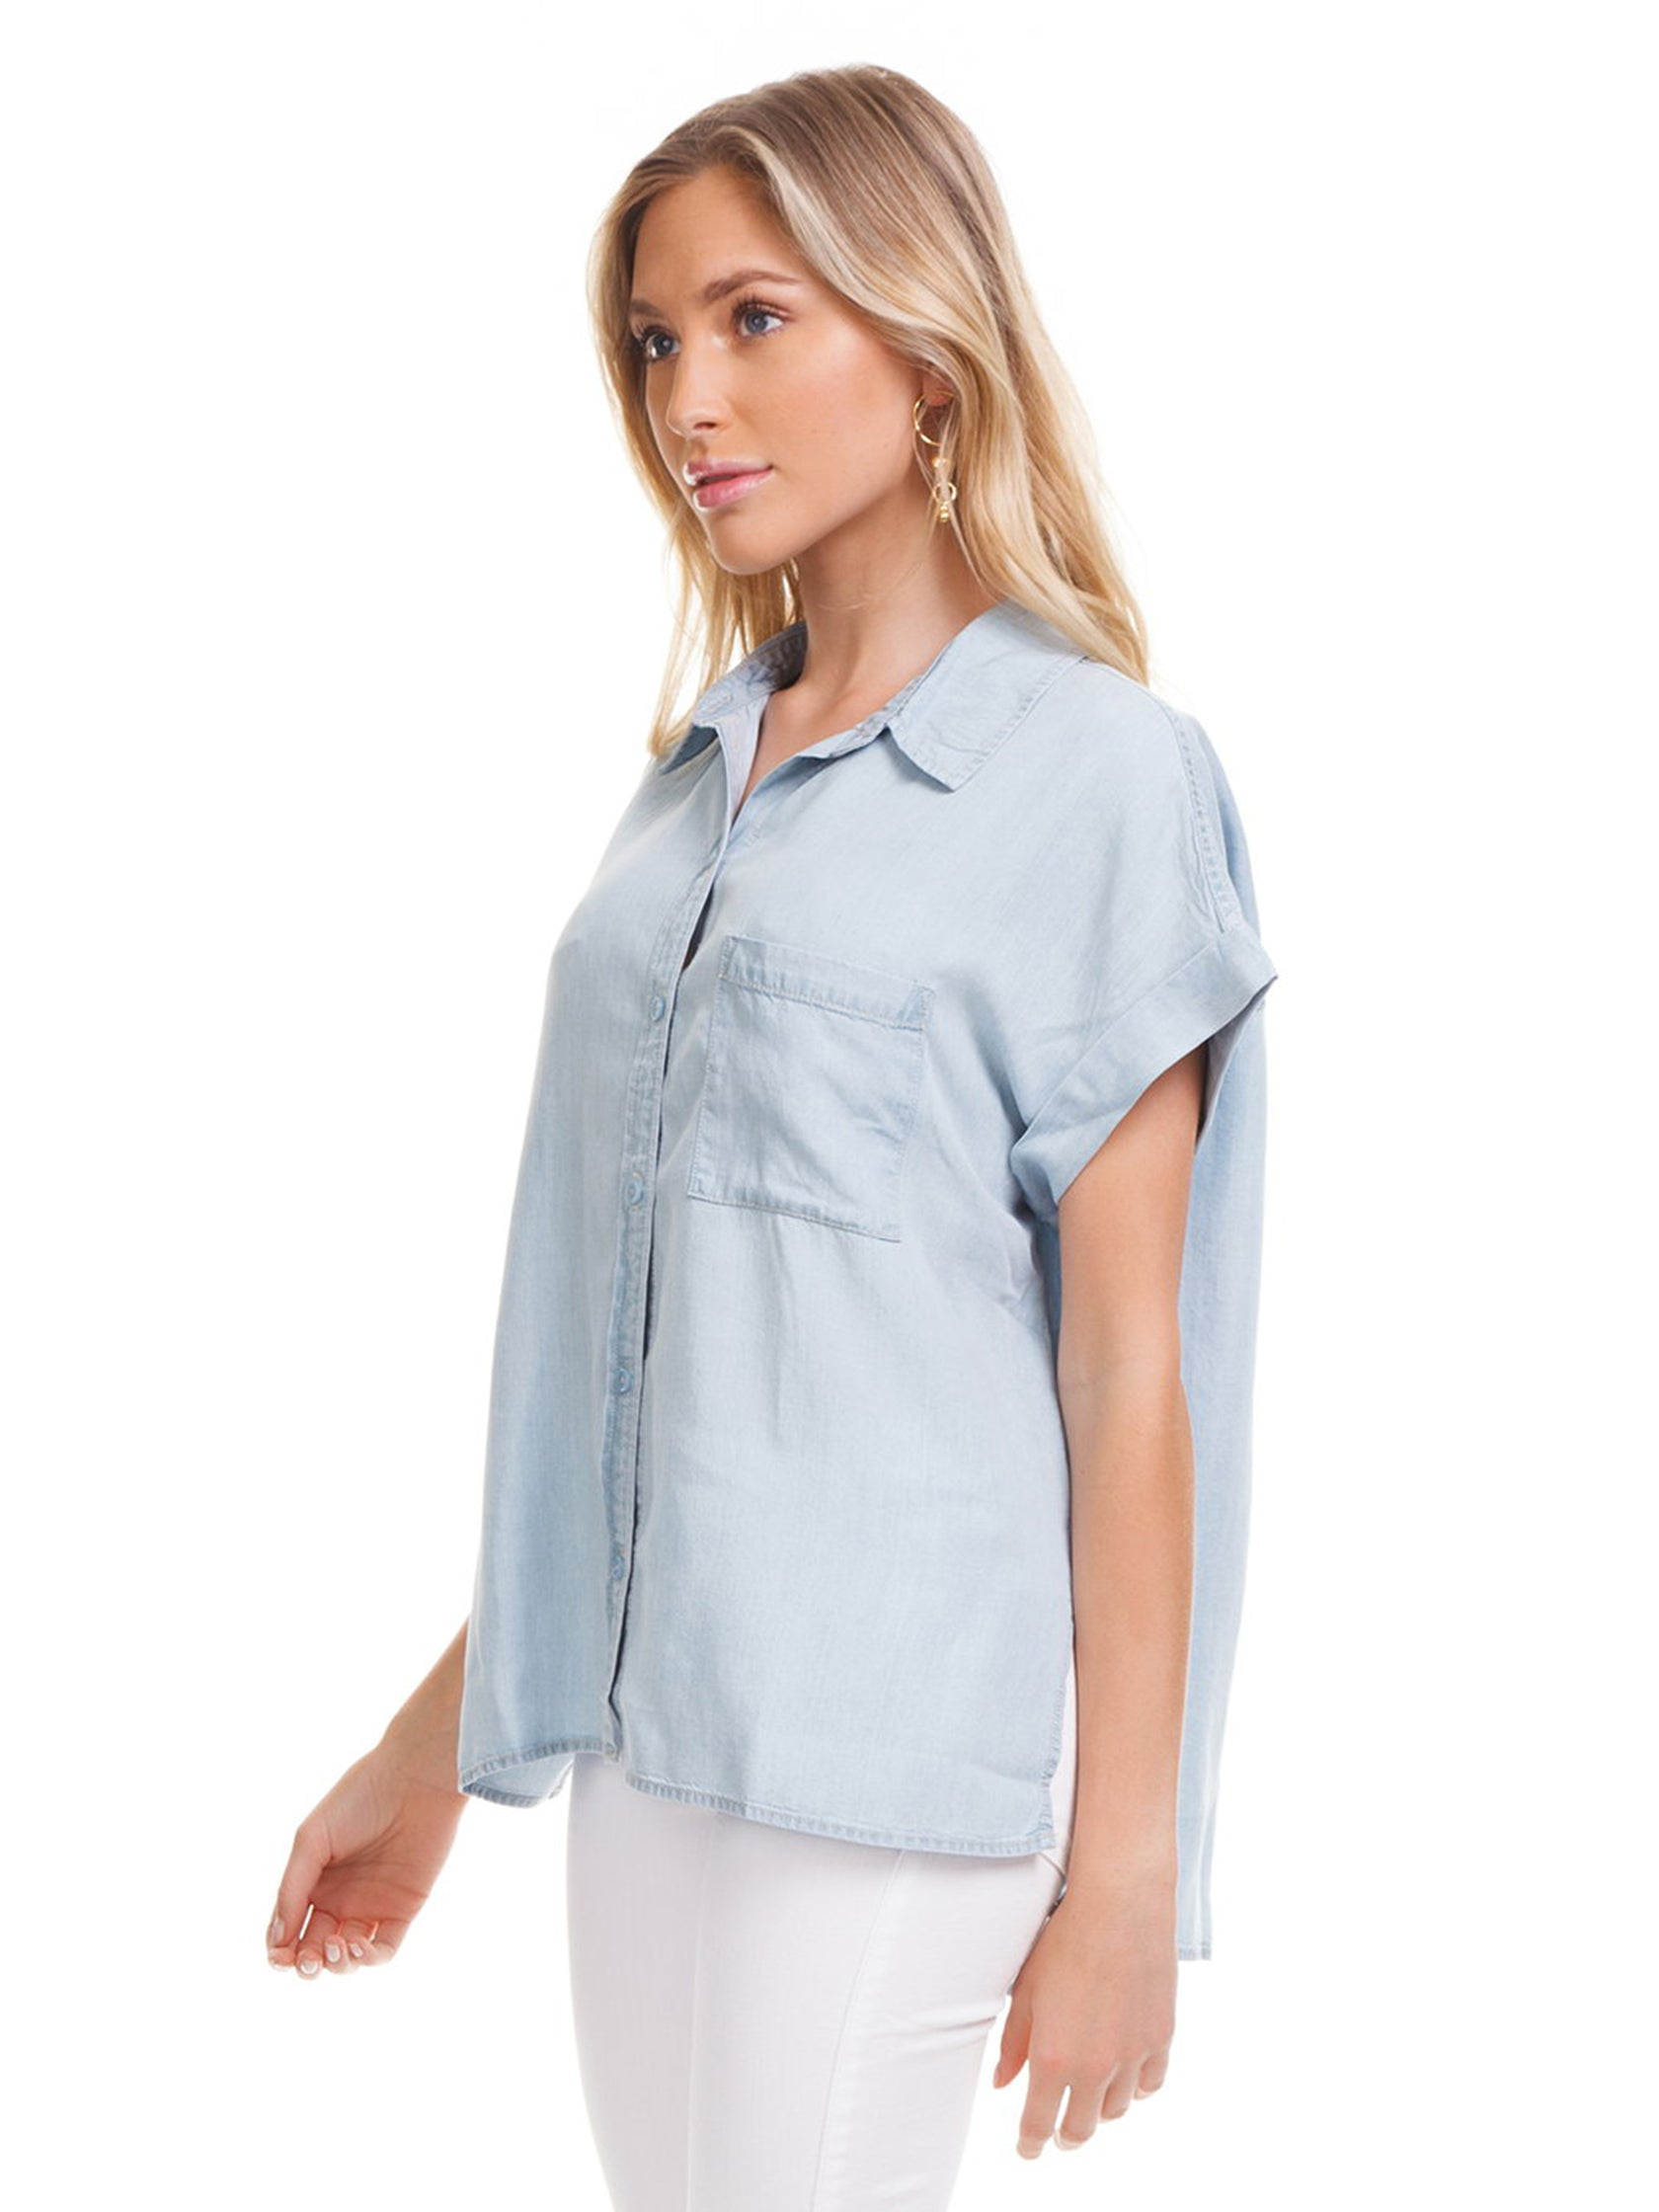 Women wearing a top rental from SANCTUARY called Mod Short Sleeve Boyfriend Shirt